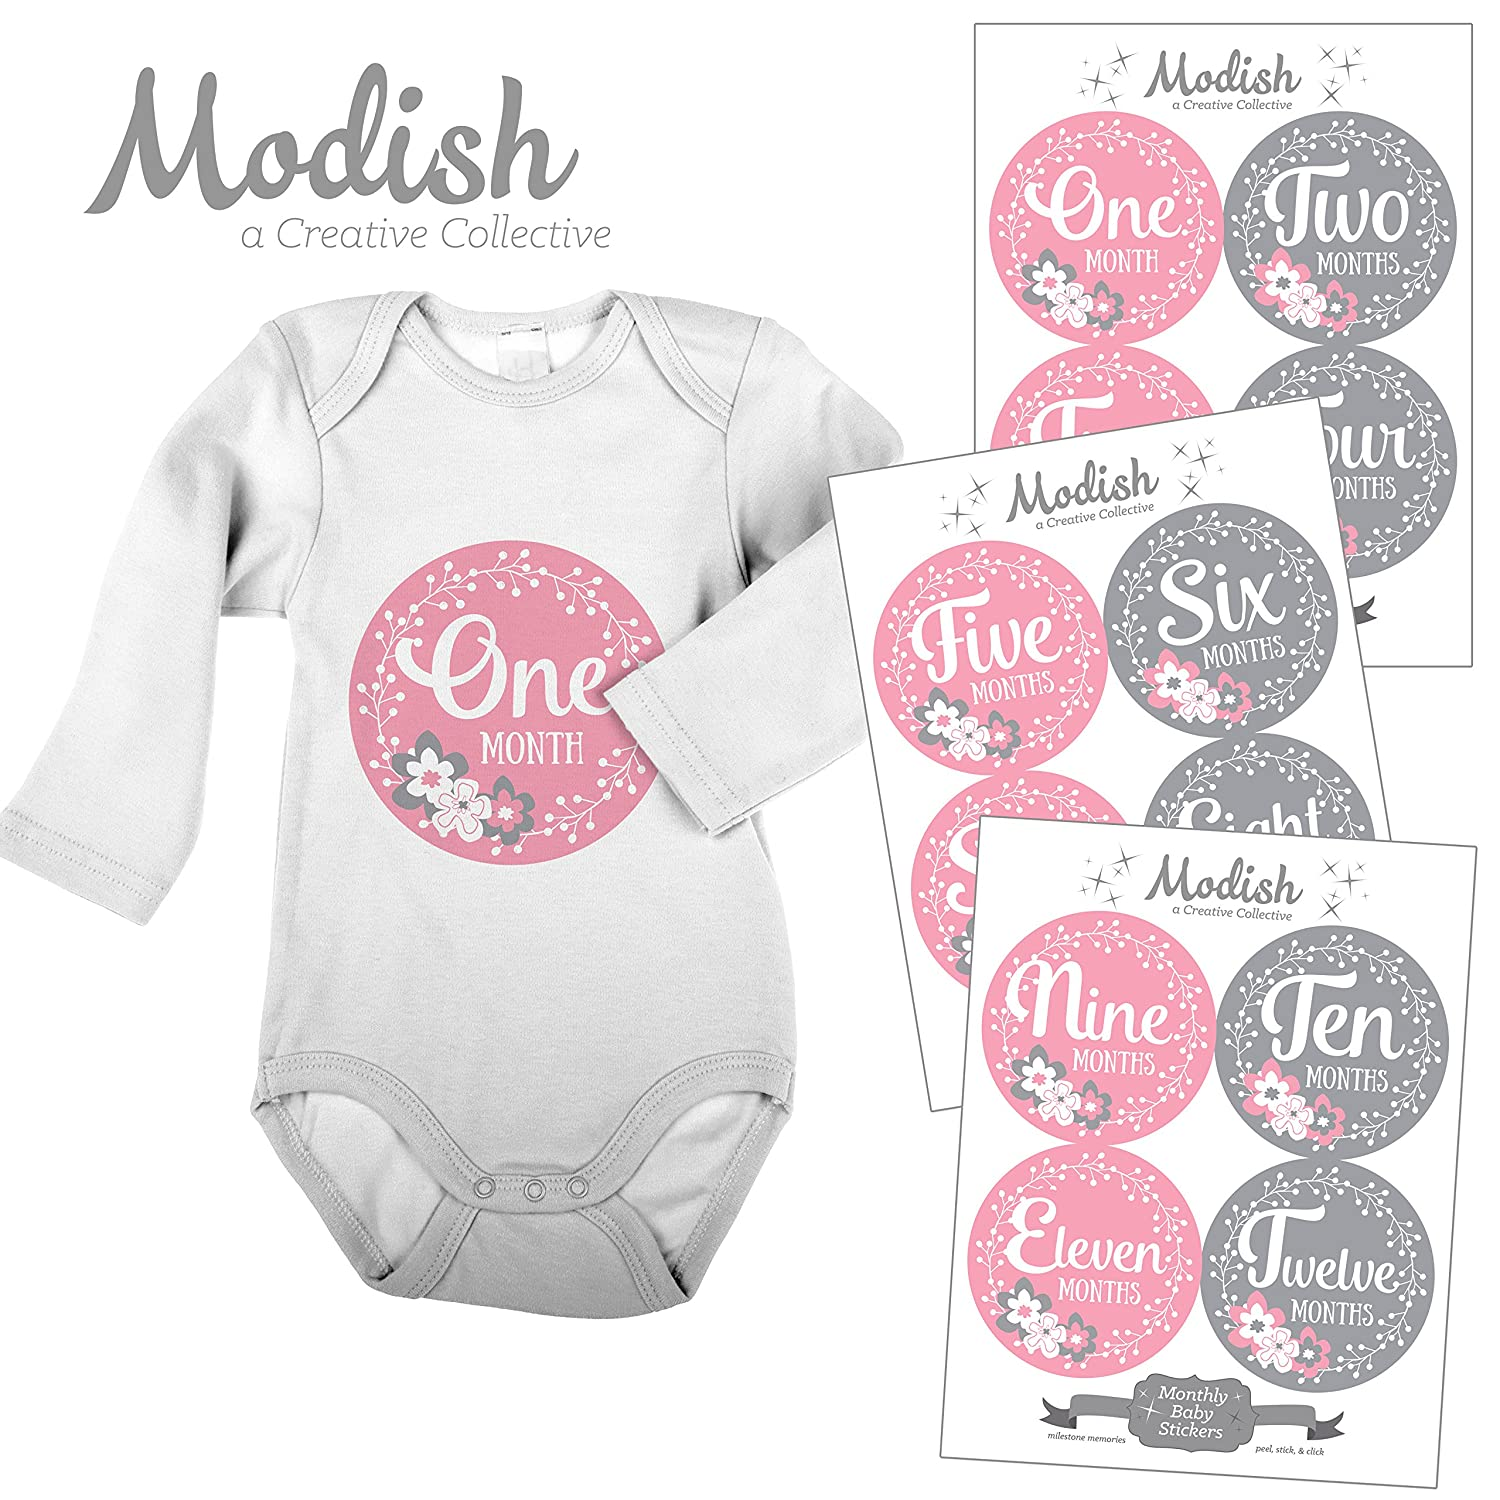 12 Monthly Baby Stickers, Pink & Gray, Flowers, Girl, Baby Belly Stickers, Baby Month Stickers, First Year Stickers Months 1-12, Pink, Grey, Baby Girl by Modish - Creative Collective   B00XH0XHJ6